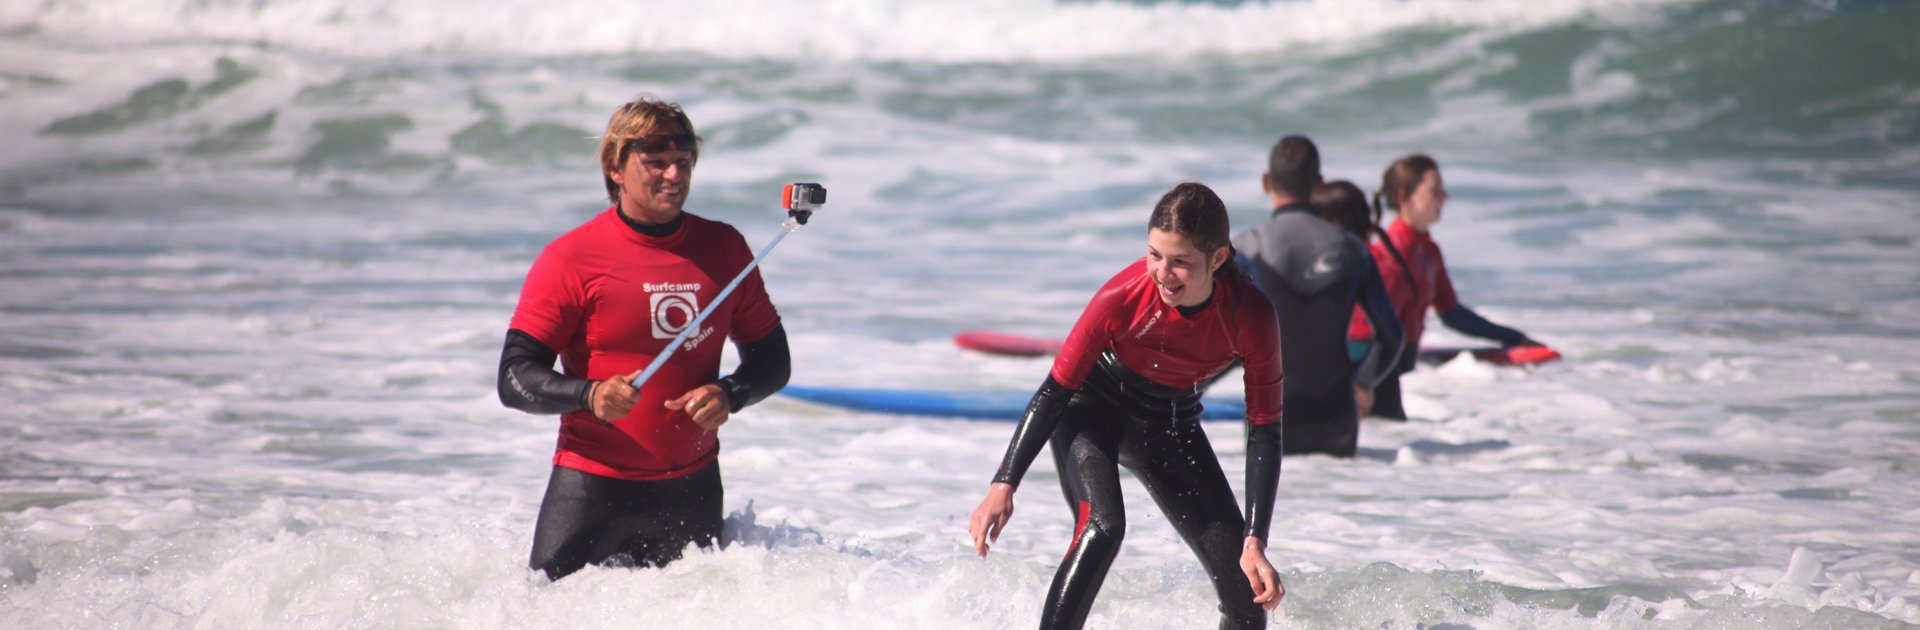 Surfkurs Wellenreiten in Conil El Palmar